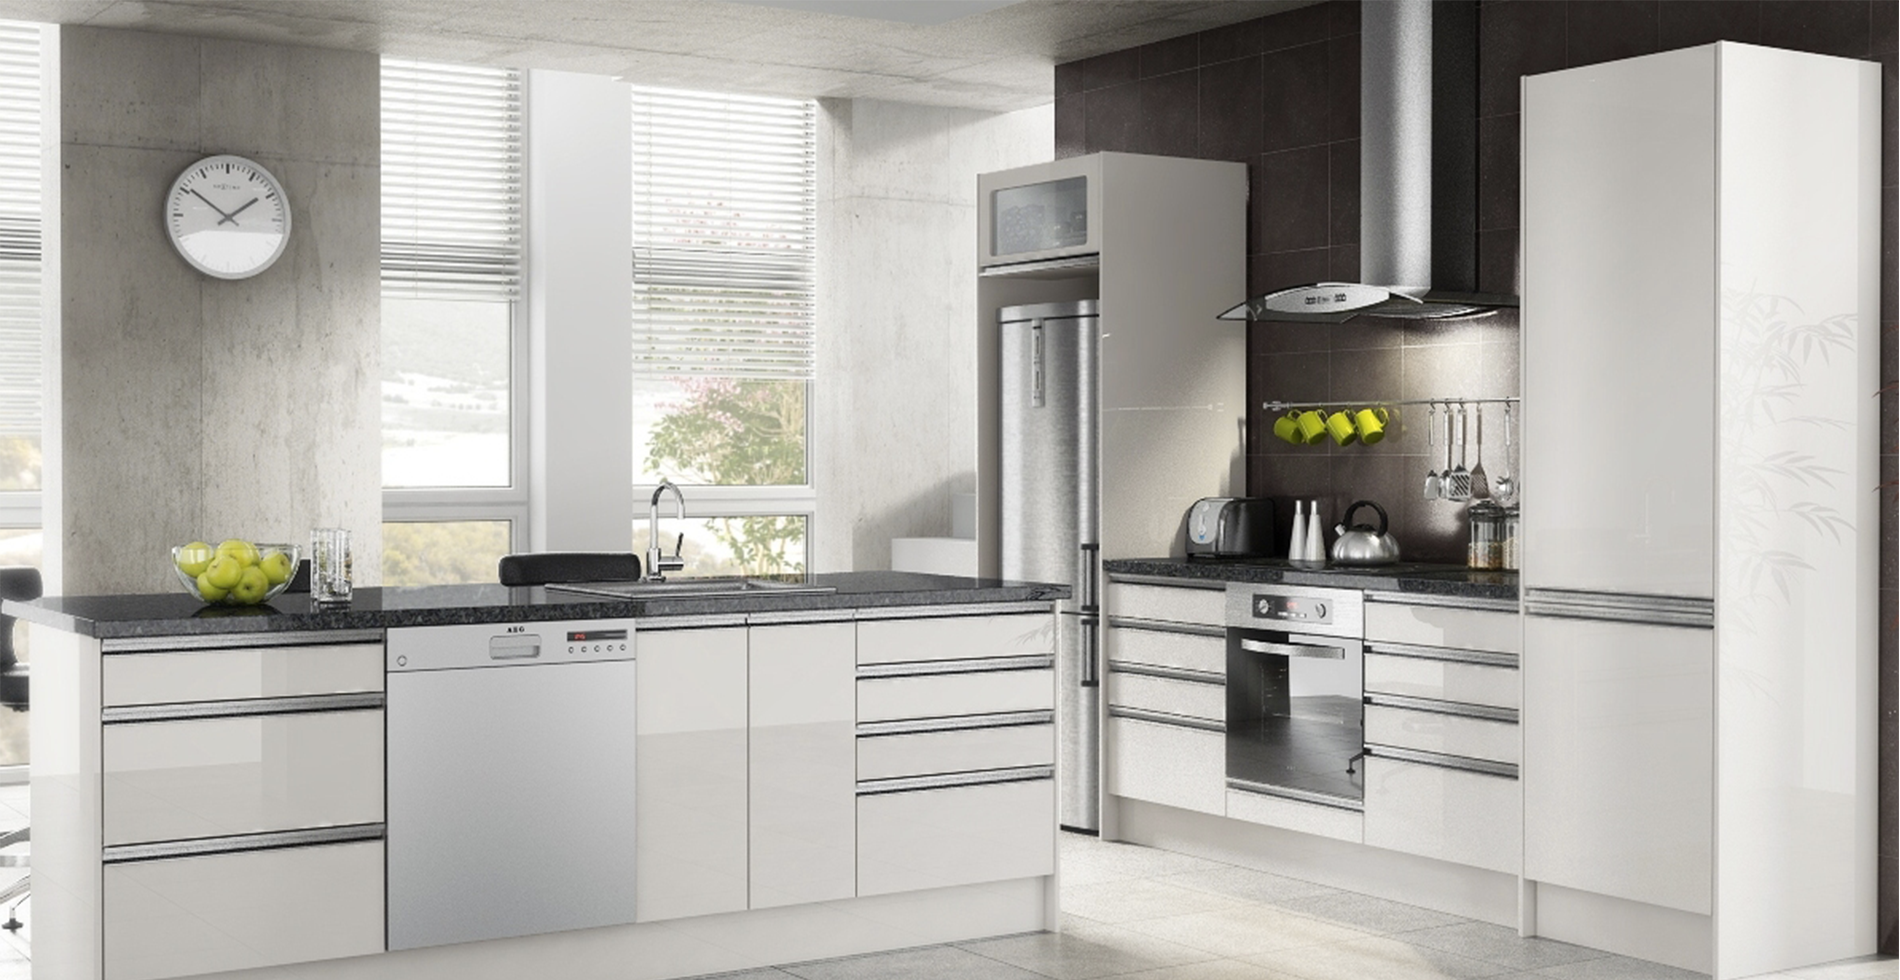 ValuePak Premier Range European Style Kitchen Cabinetry